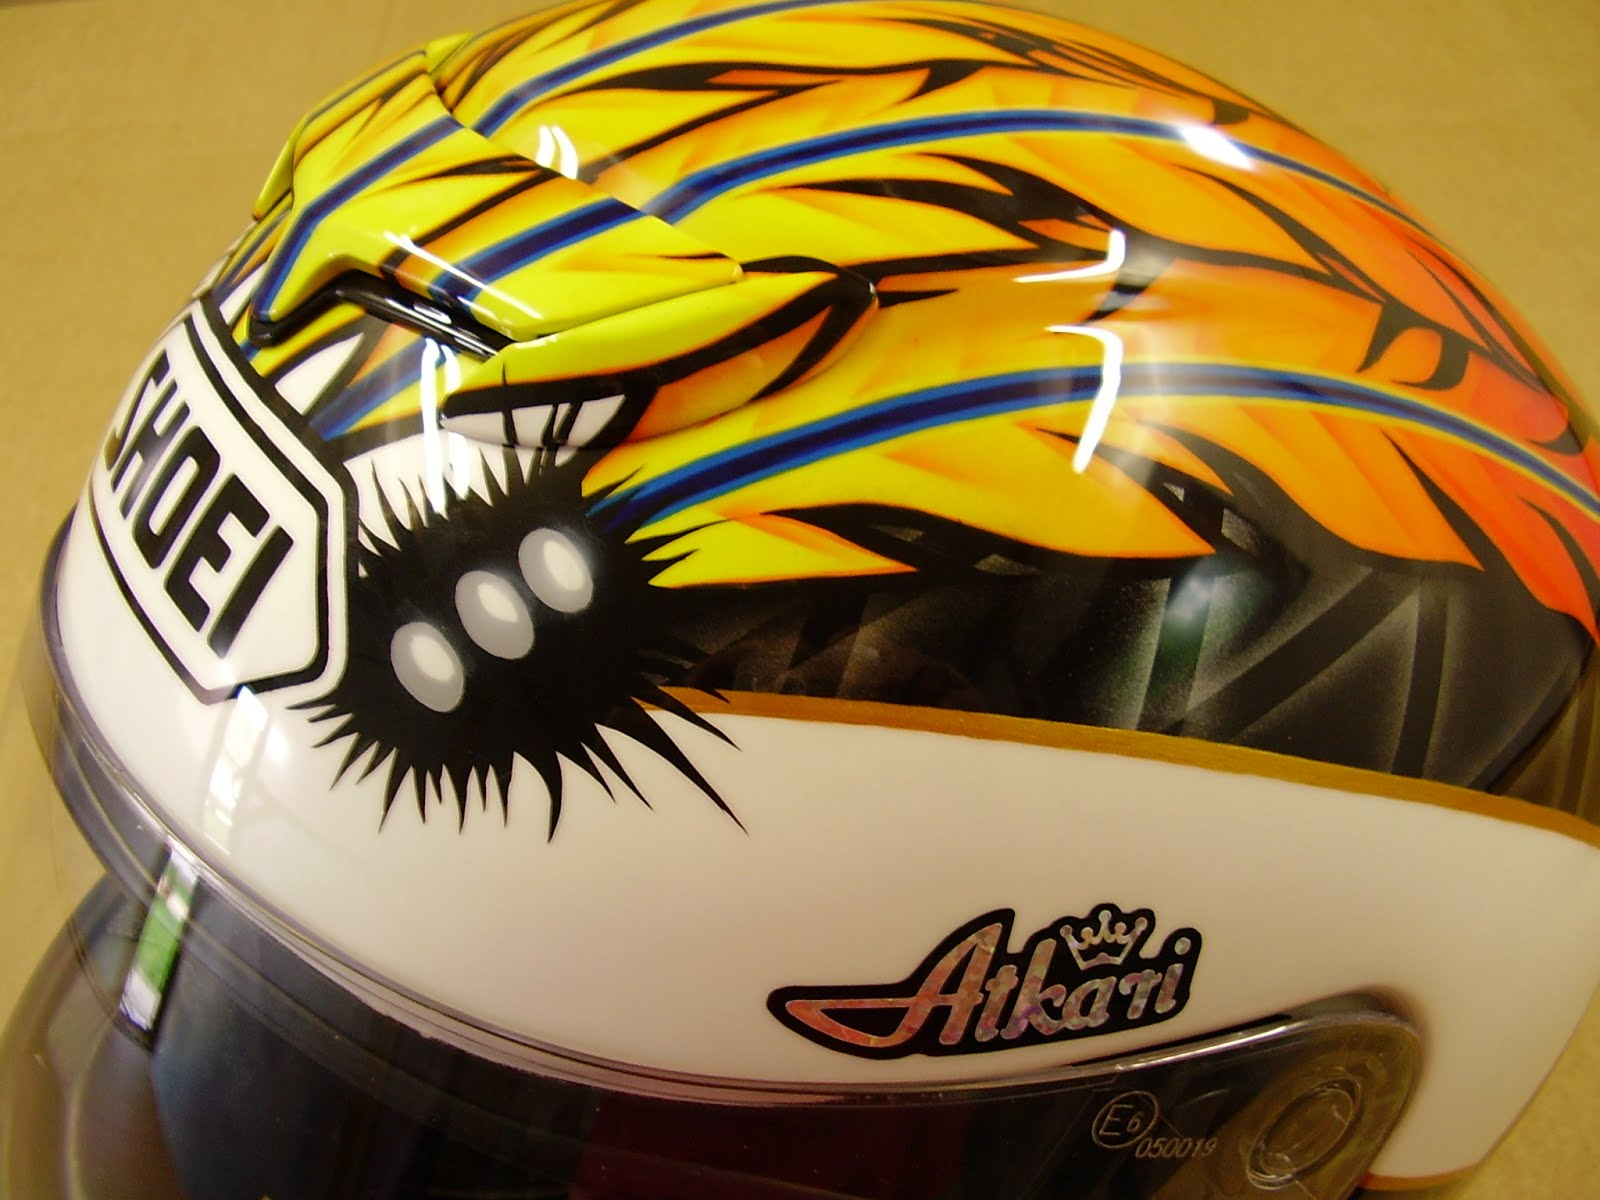 SHOEI Race Helmet